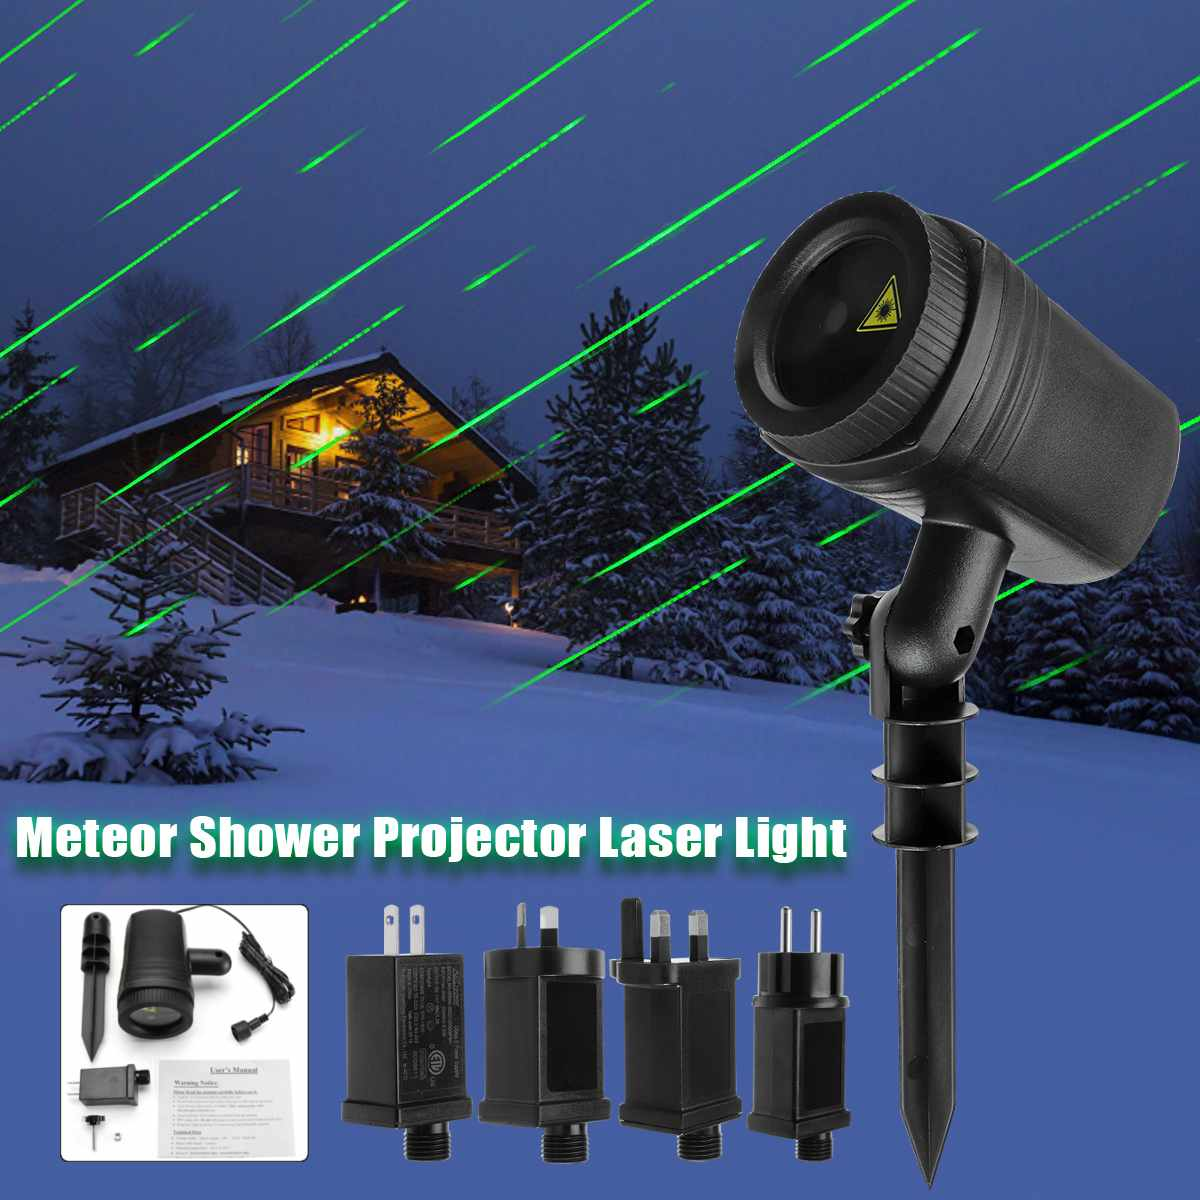 Christmas Meteor Shower Projector Laser LED Light Waterproof Lamp AC 100 240V Lawn Garden Decor Directional Projection ABS